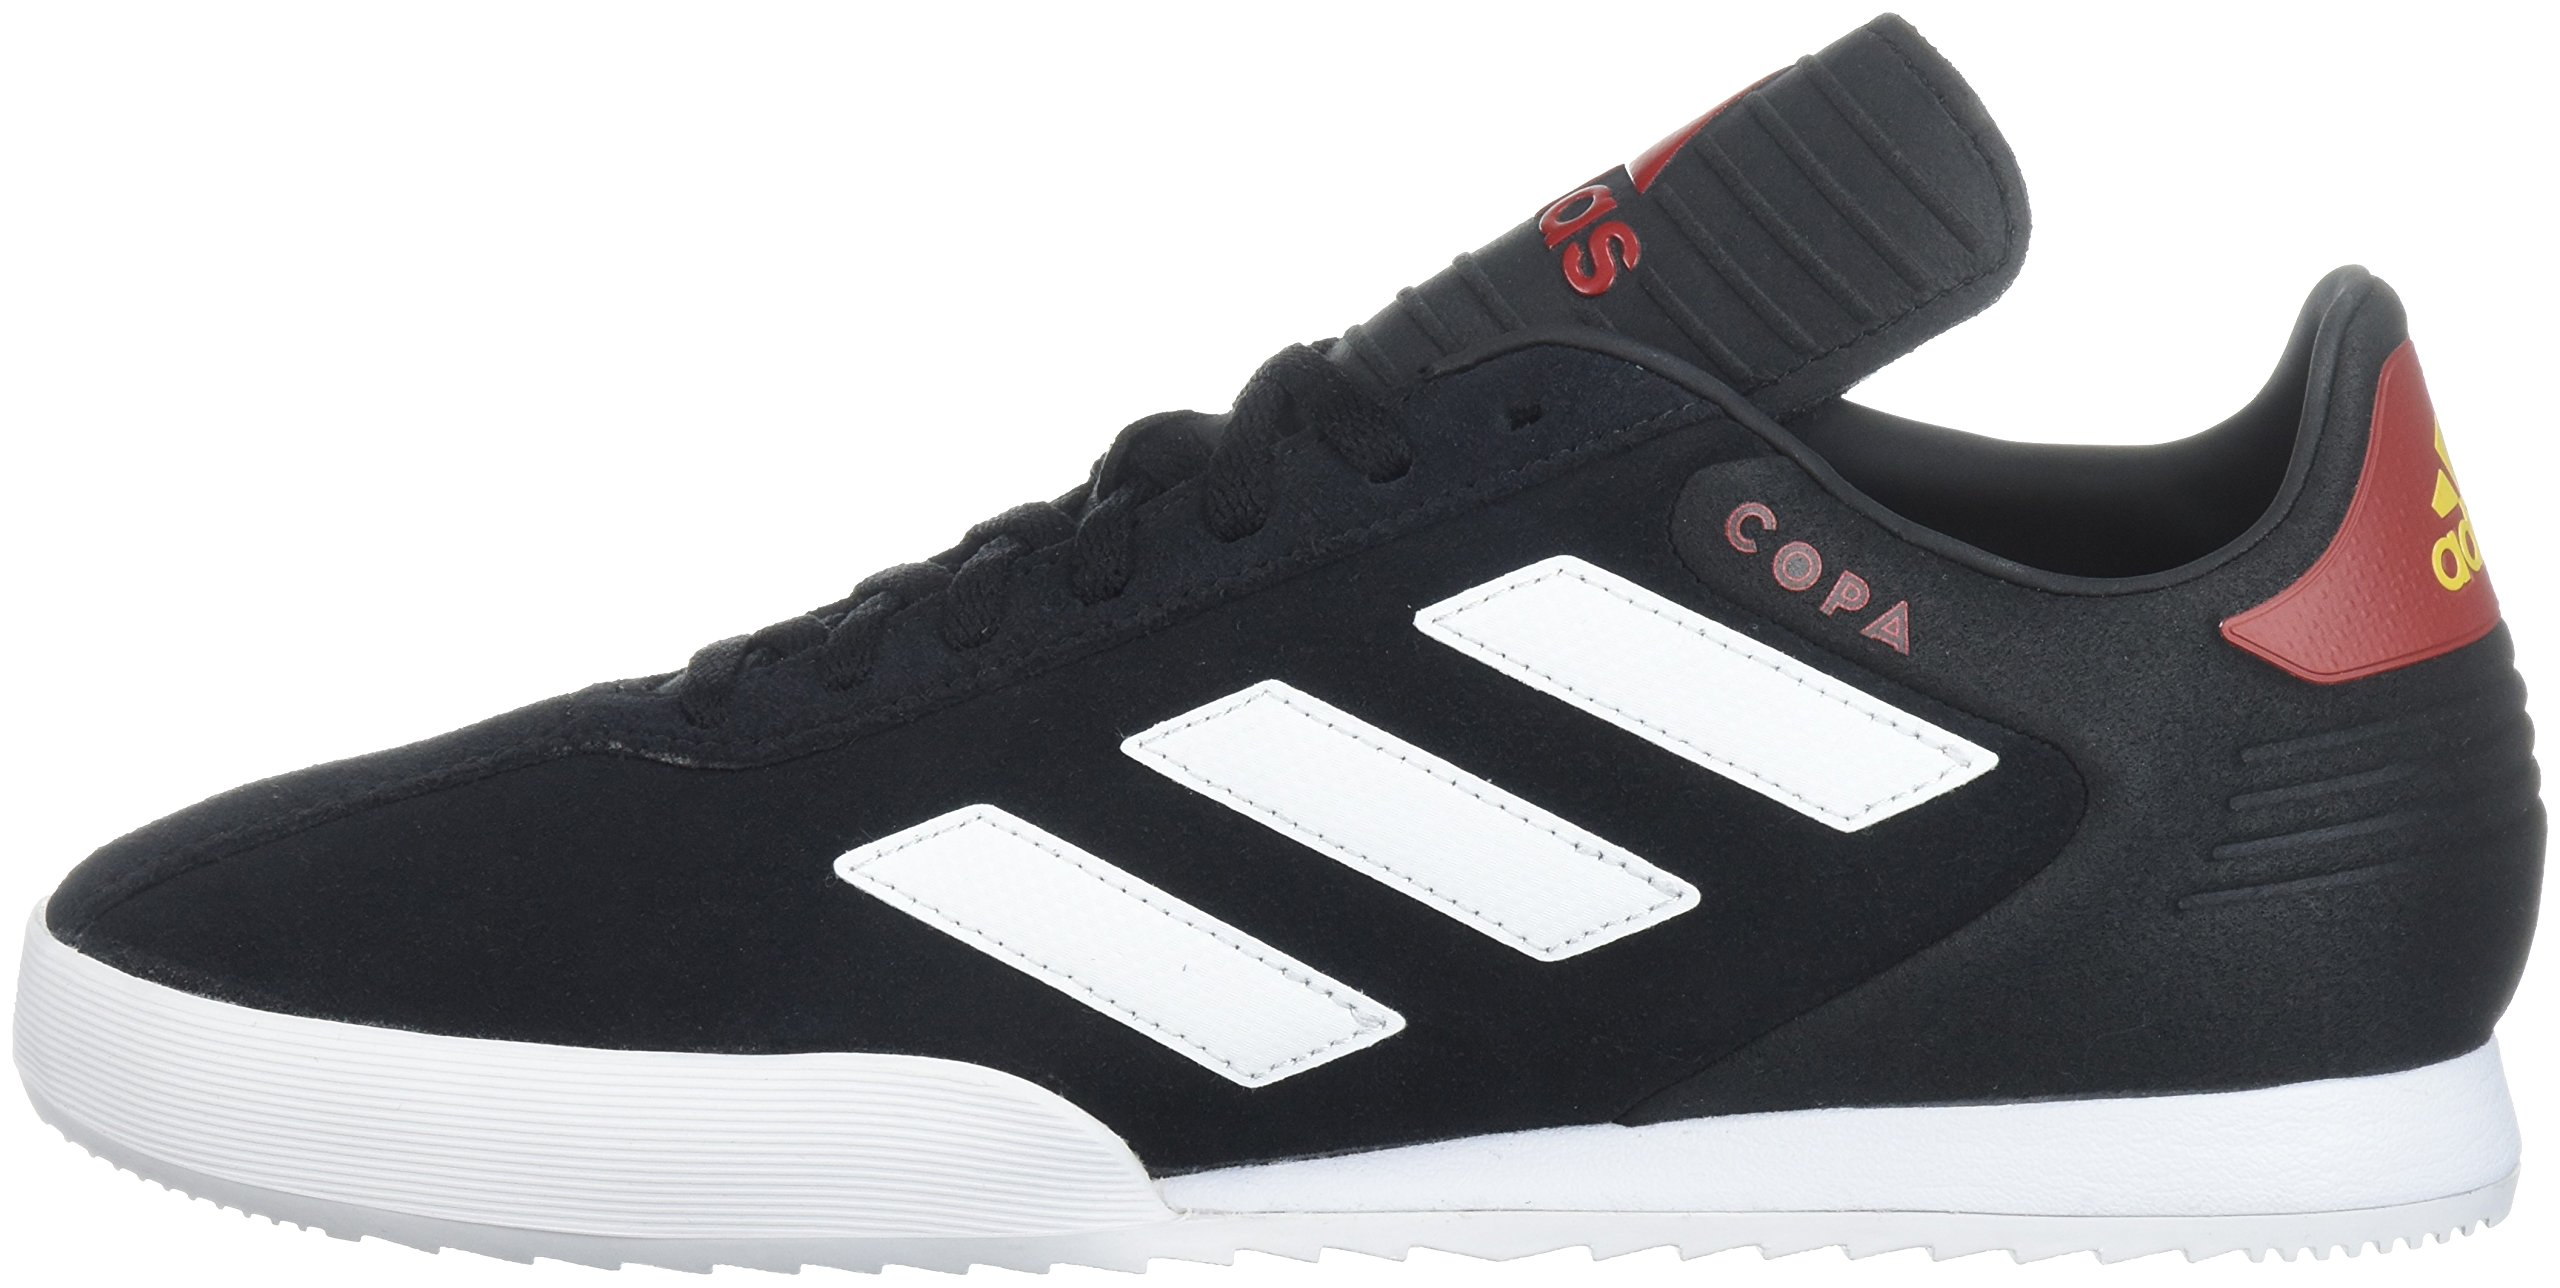 adidas Men's Copa Super Soccer Shoe, Black/White/Power Red, 9 M US by adidas (Image #5)